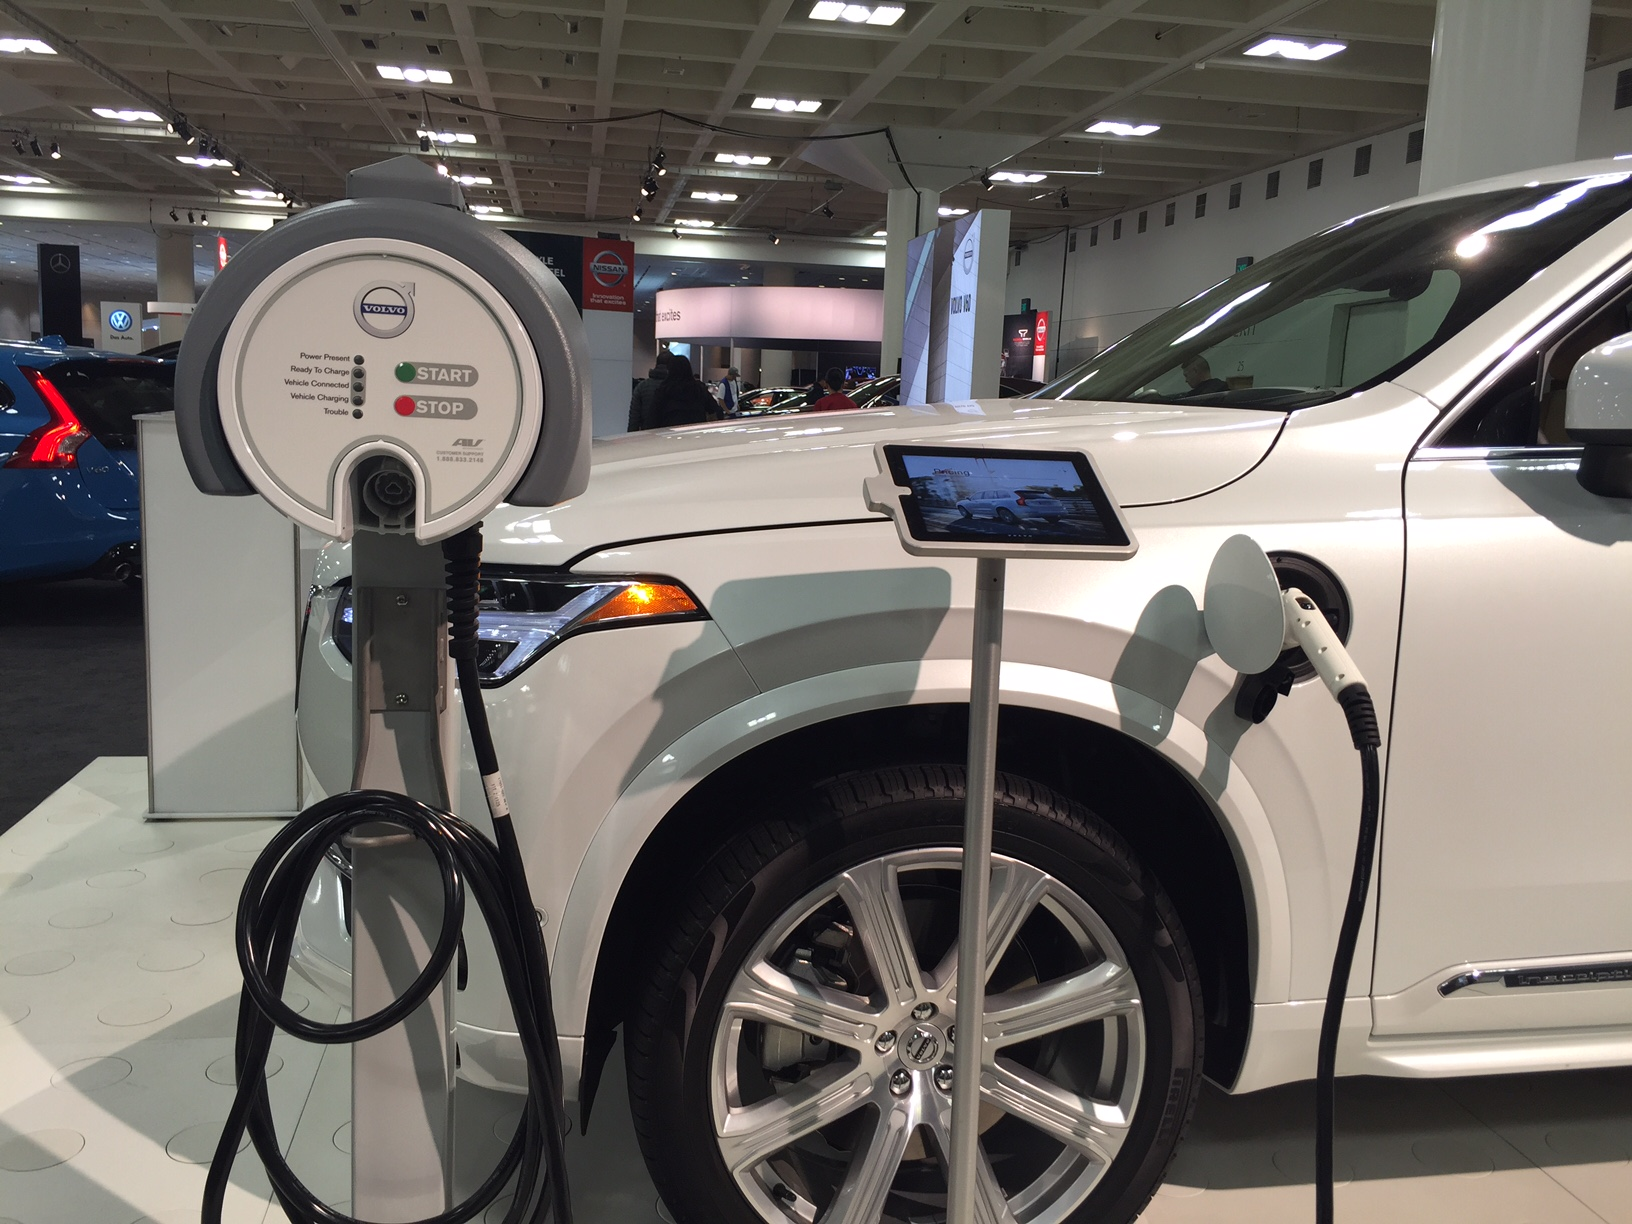 Innovation and alternative fuel technology at the S.F. Auto Show